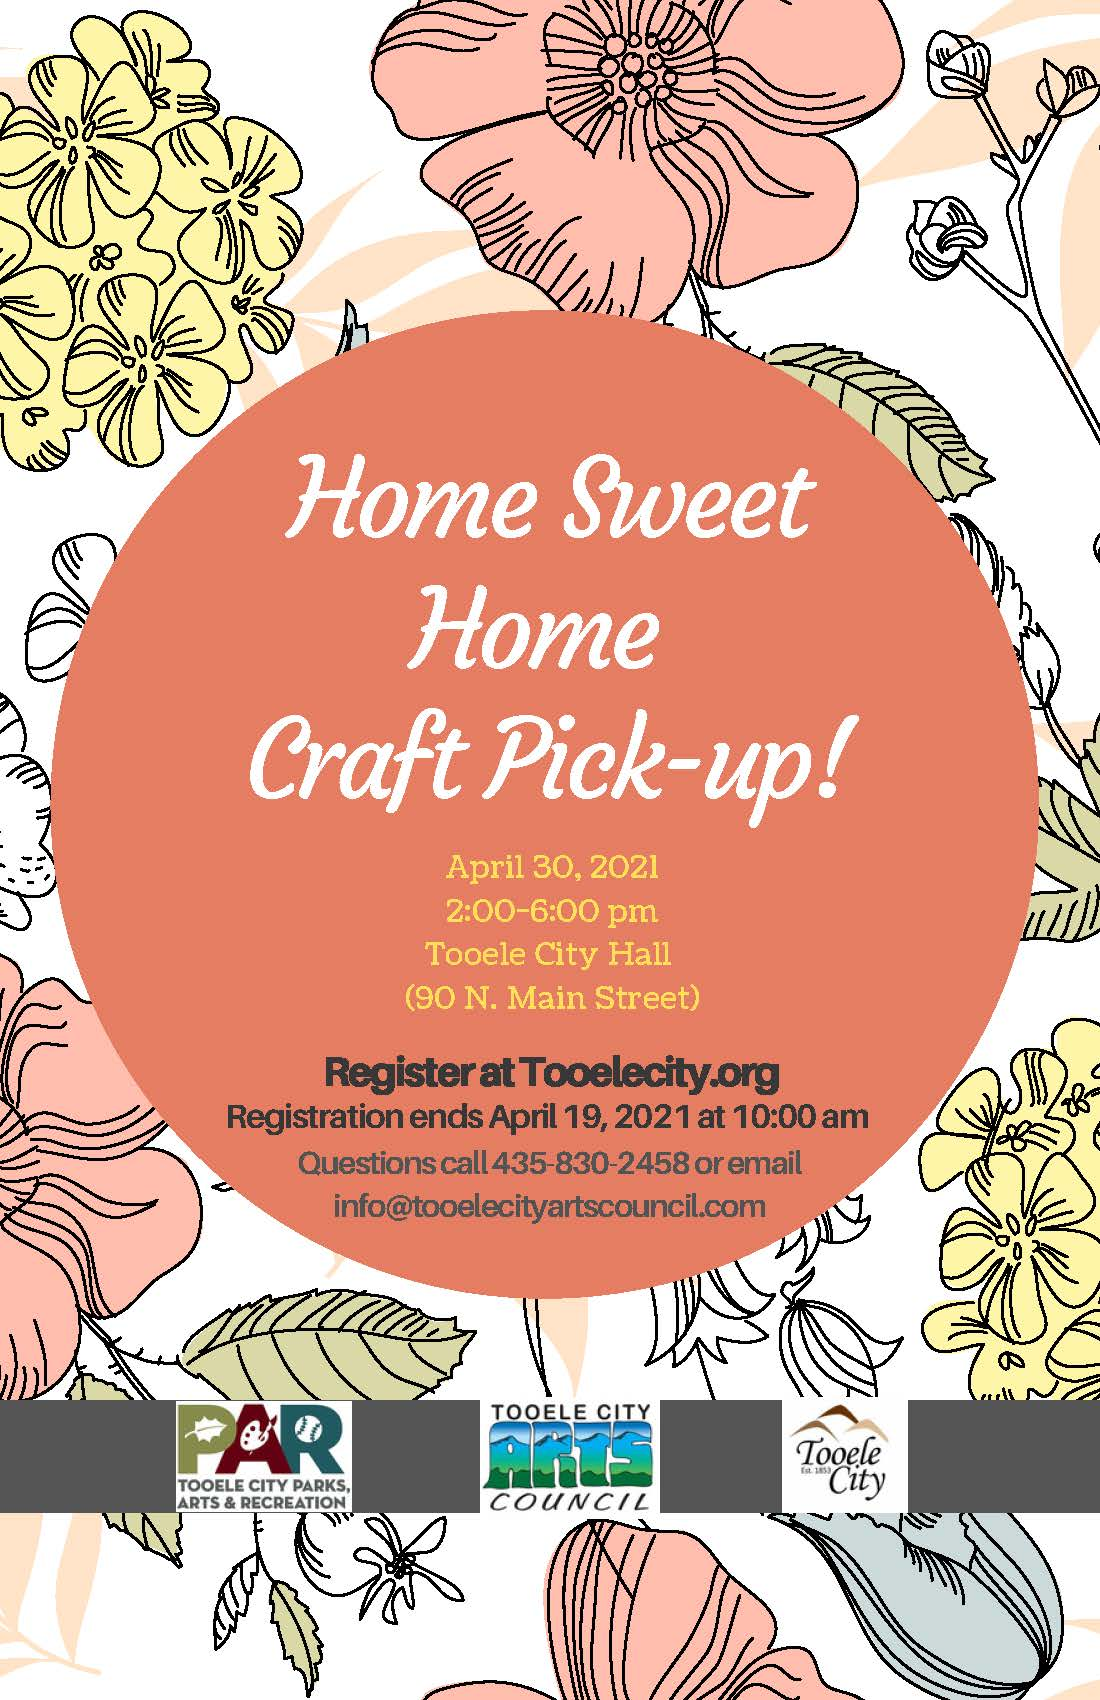 Home Sweet Home Craft Pick Up @ Tooele City Hall | Tooele | Utah | United States